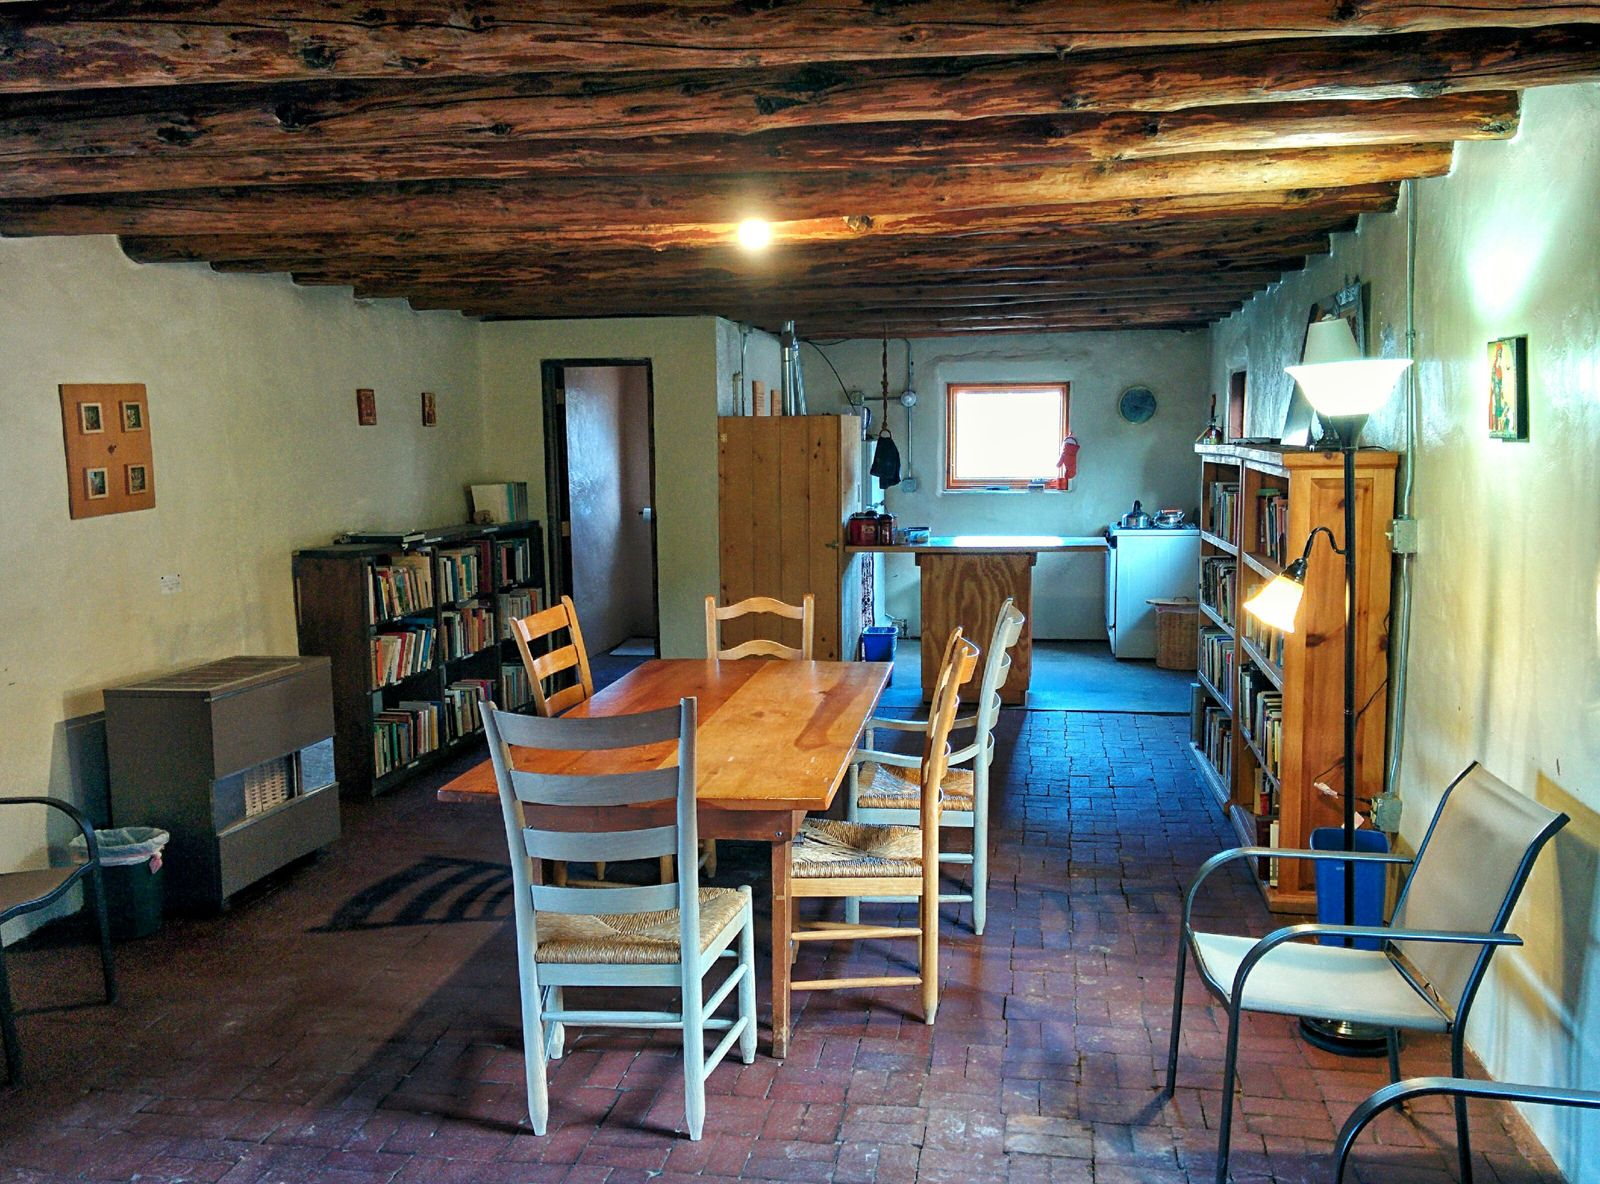 Guesthouse common area, kitchenette, and library